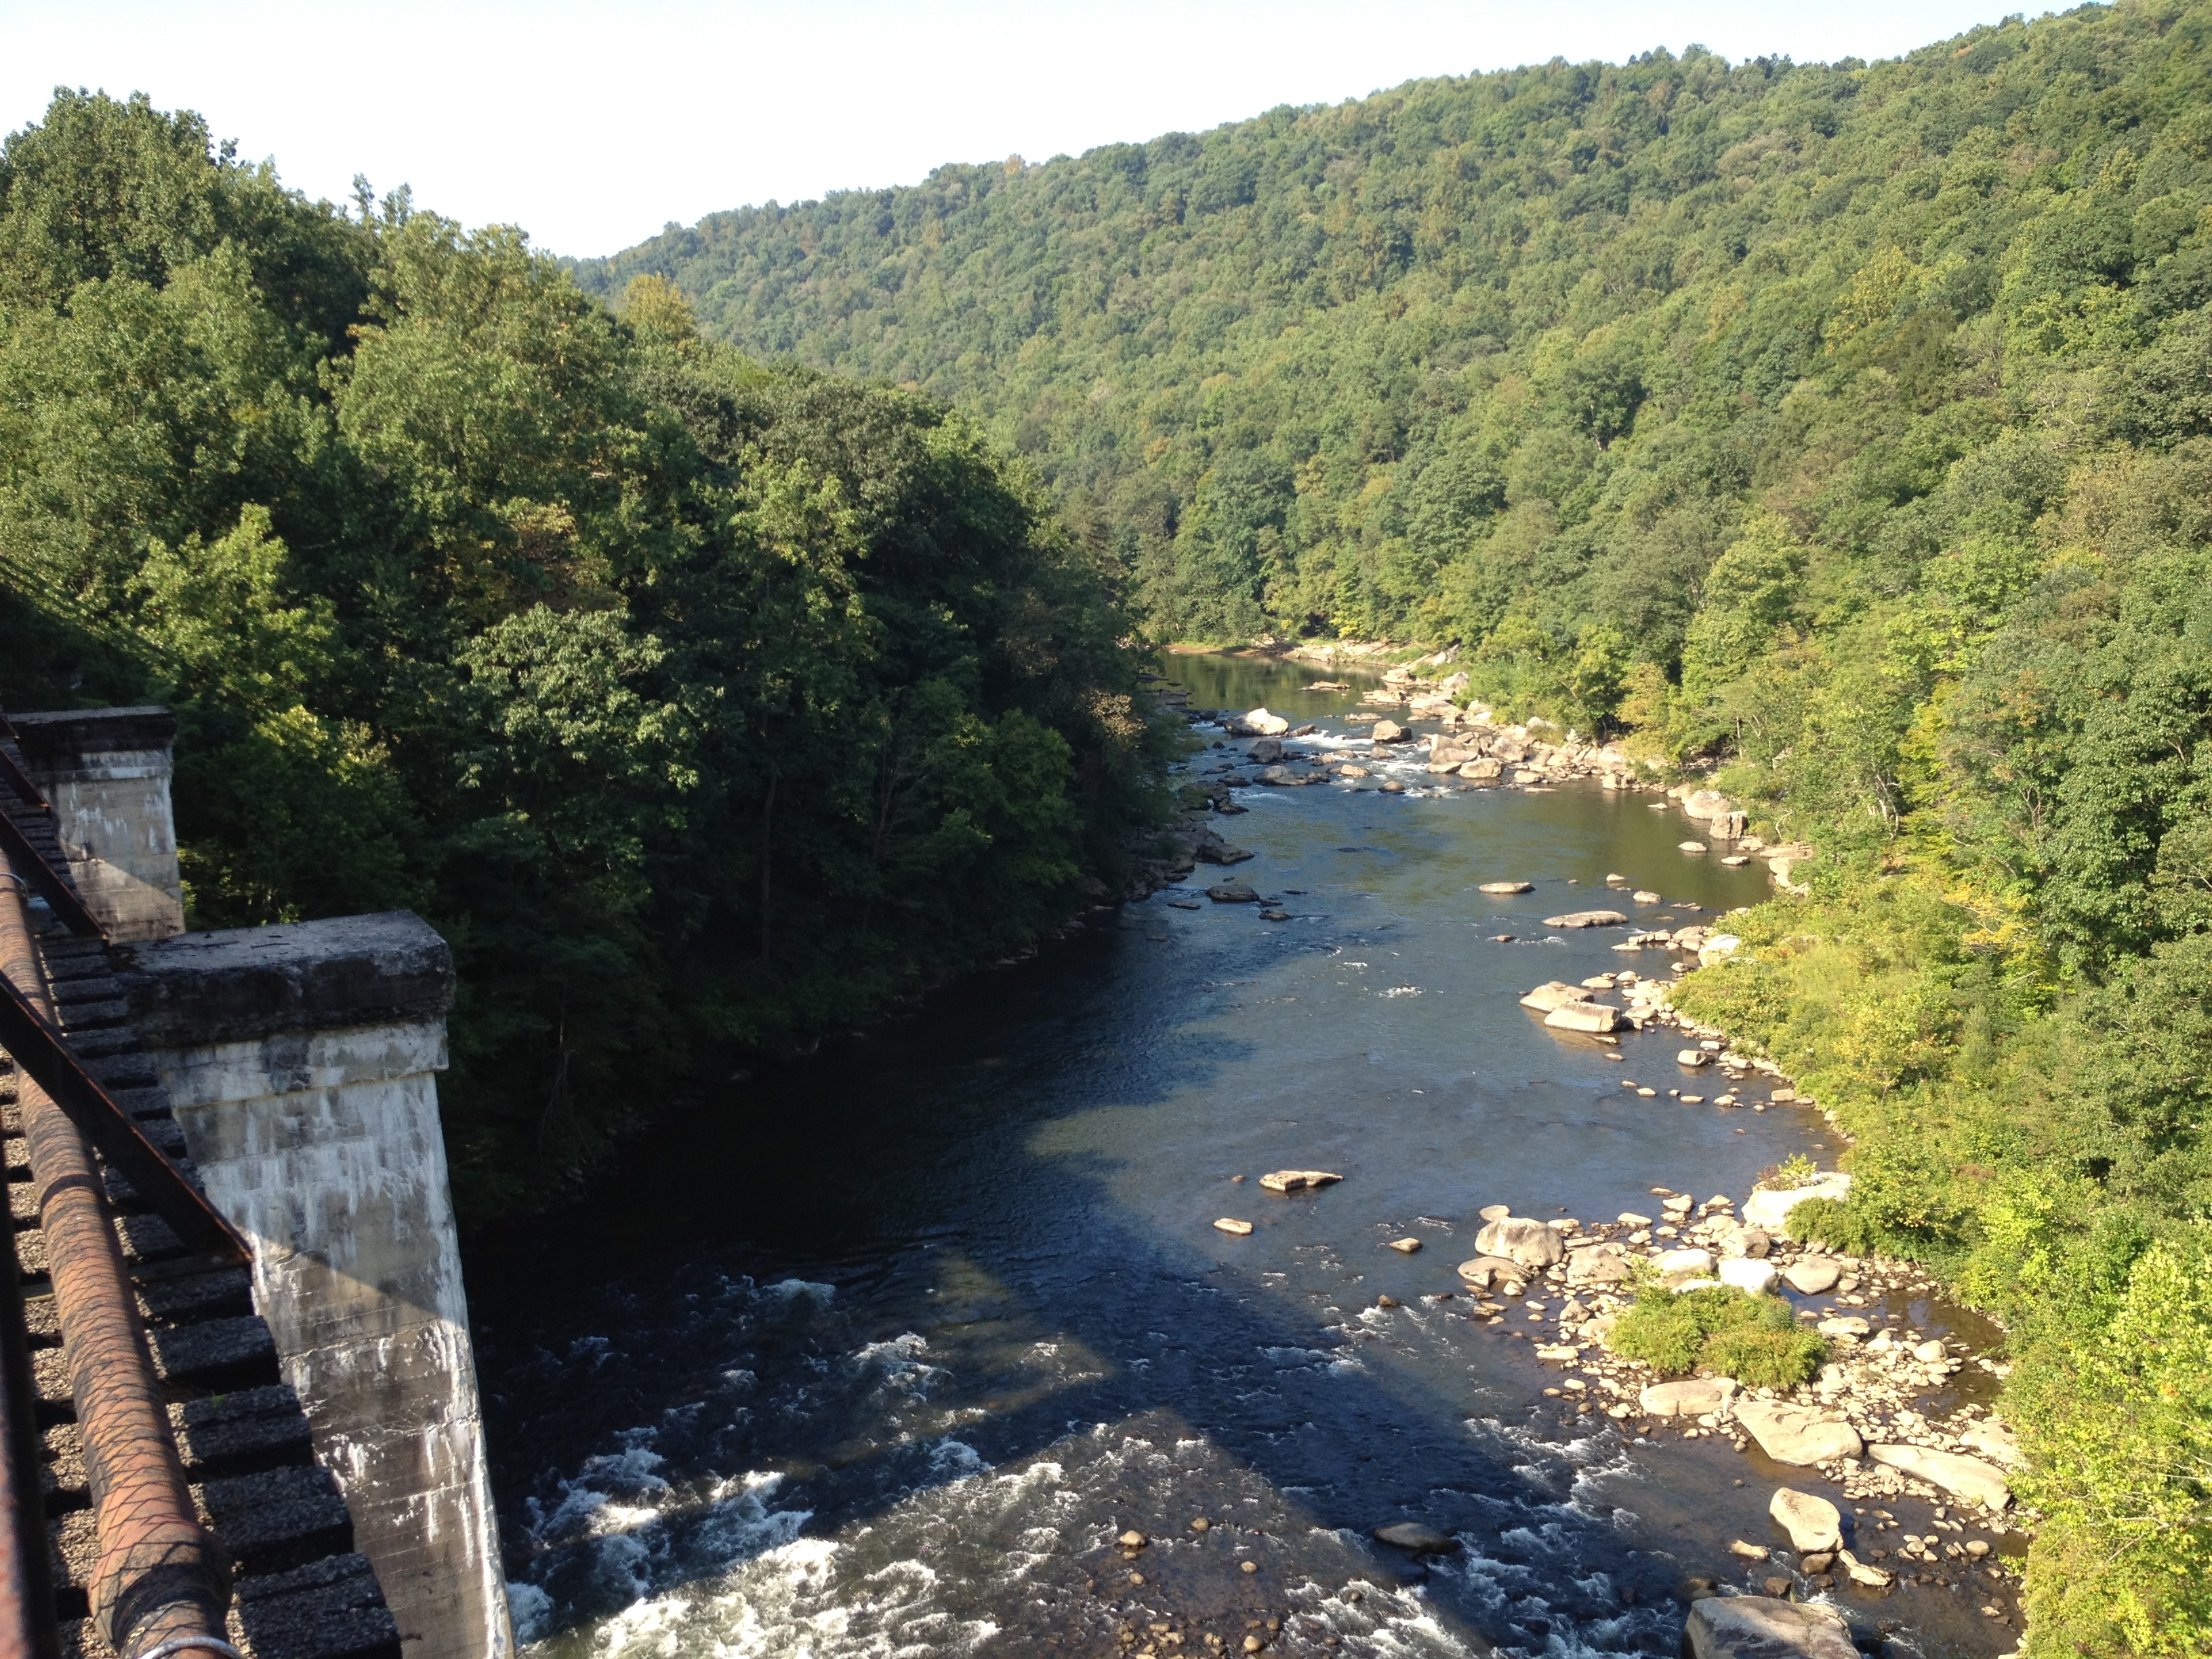 ohiopyle single women White water rafting event for singles - ohiopyle, pa 3 hours west of baltimore page 1 of 1  looking for outgoing single men & women ages 30 to 60 who want to kick back and relax and just.